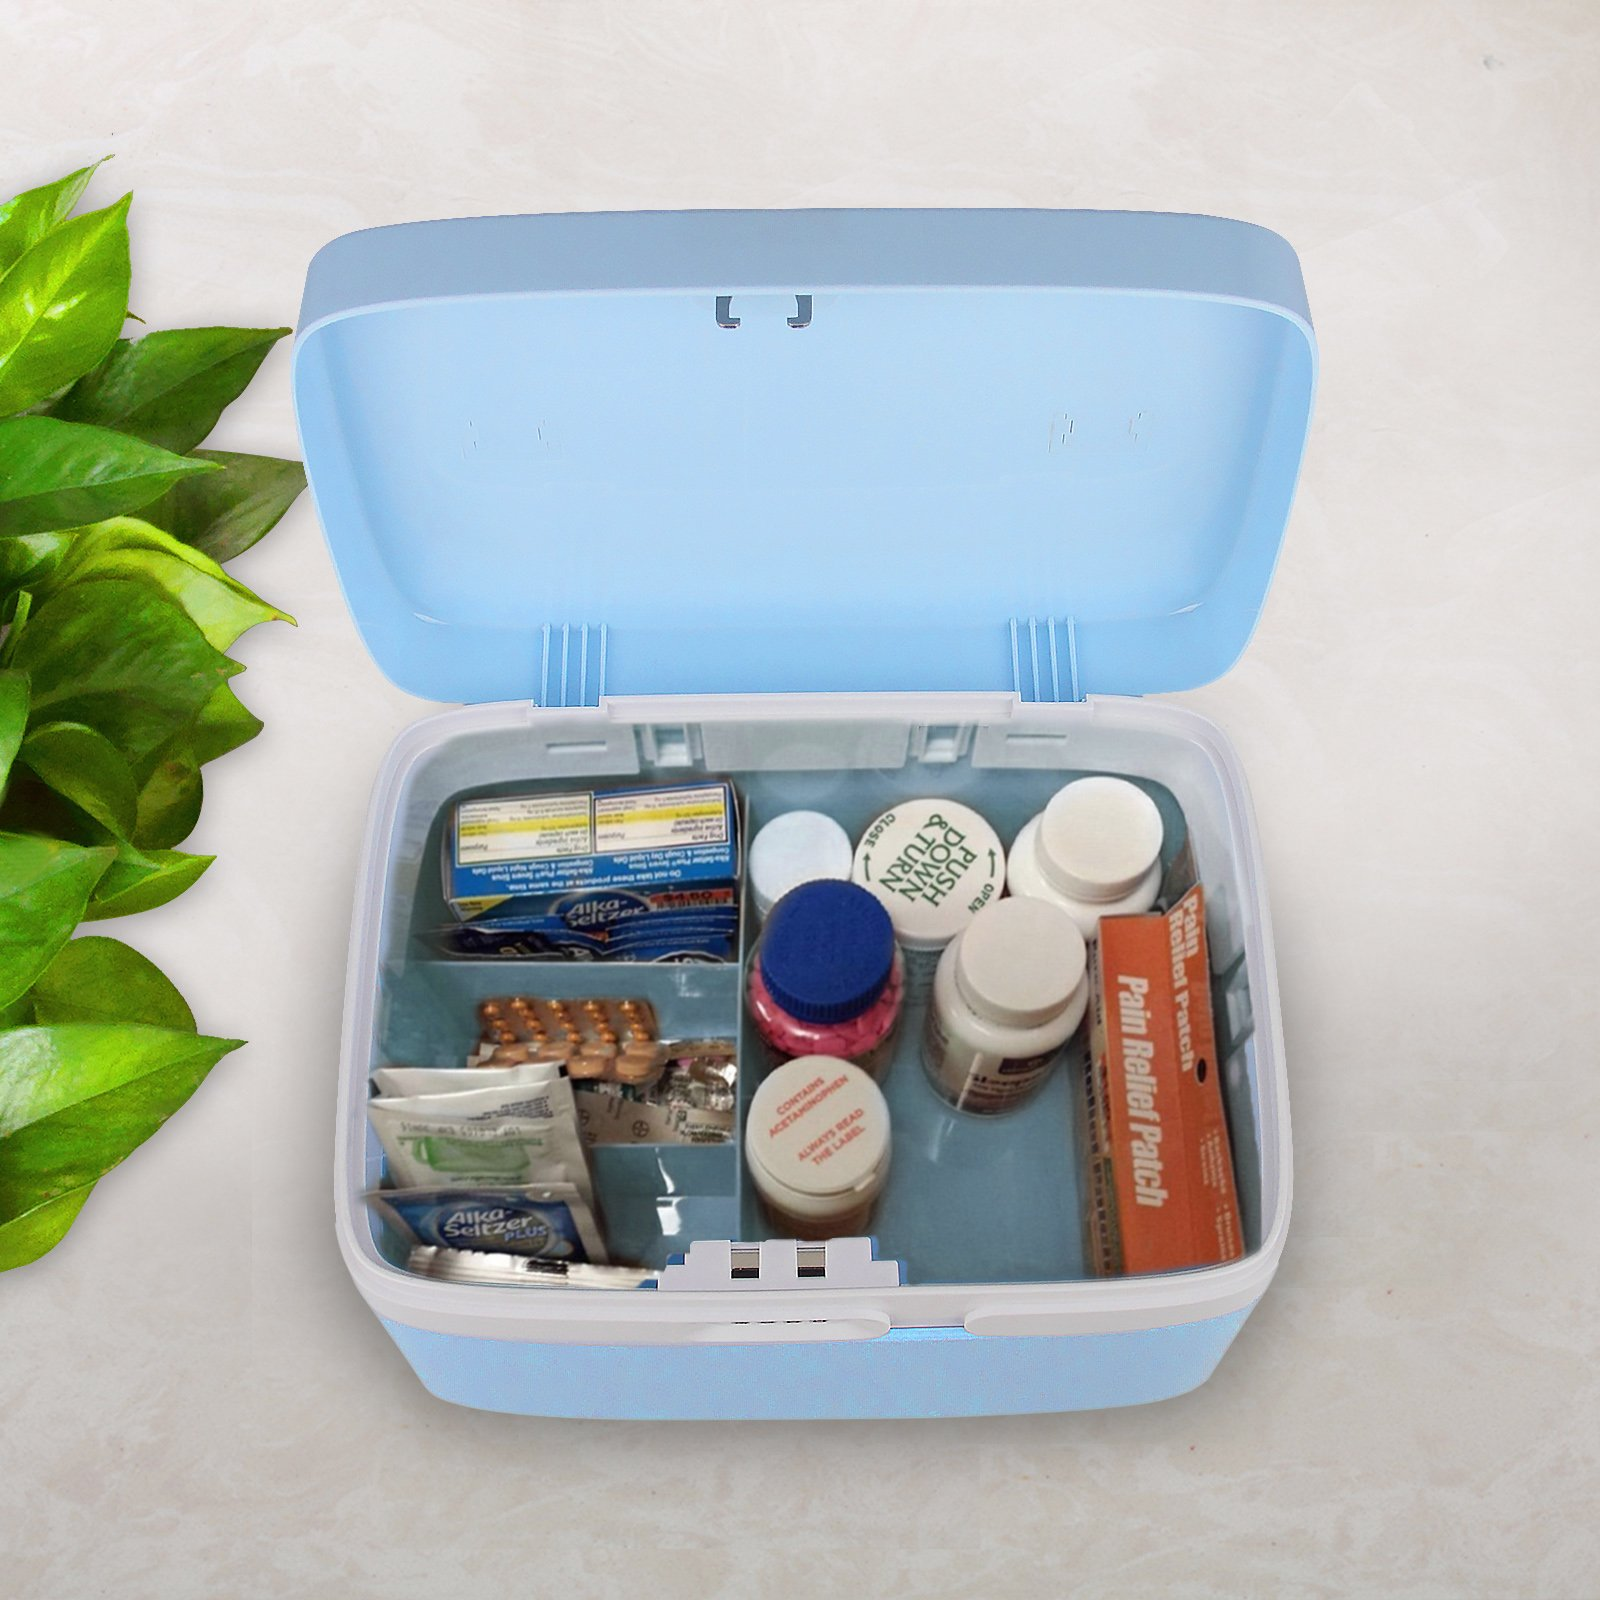 eoere Combination Lock Medicine Cabinet With Separate Compartments